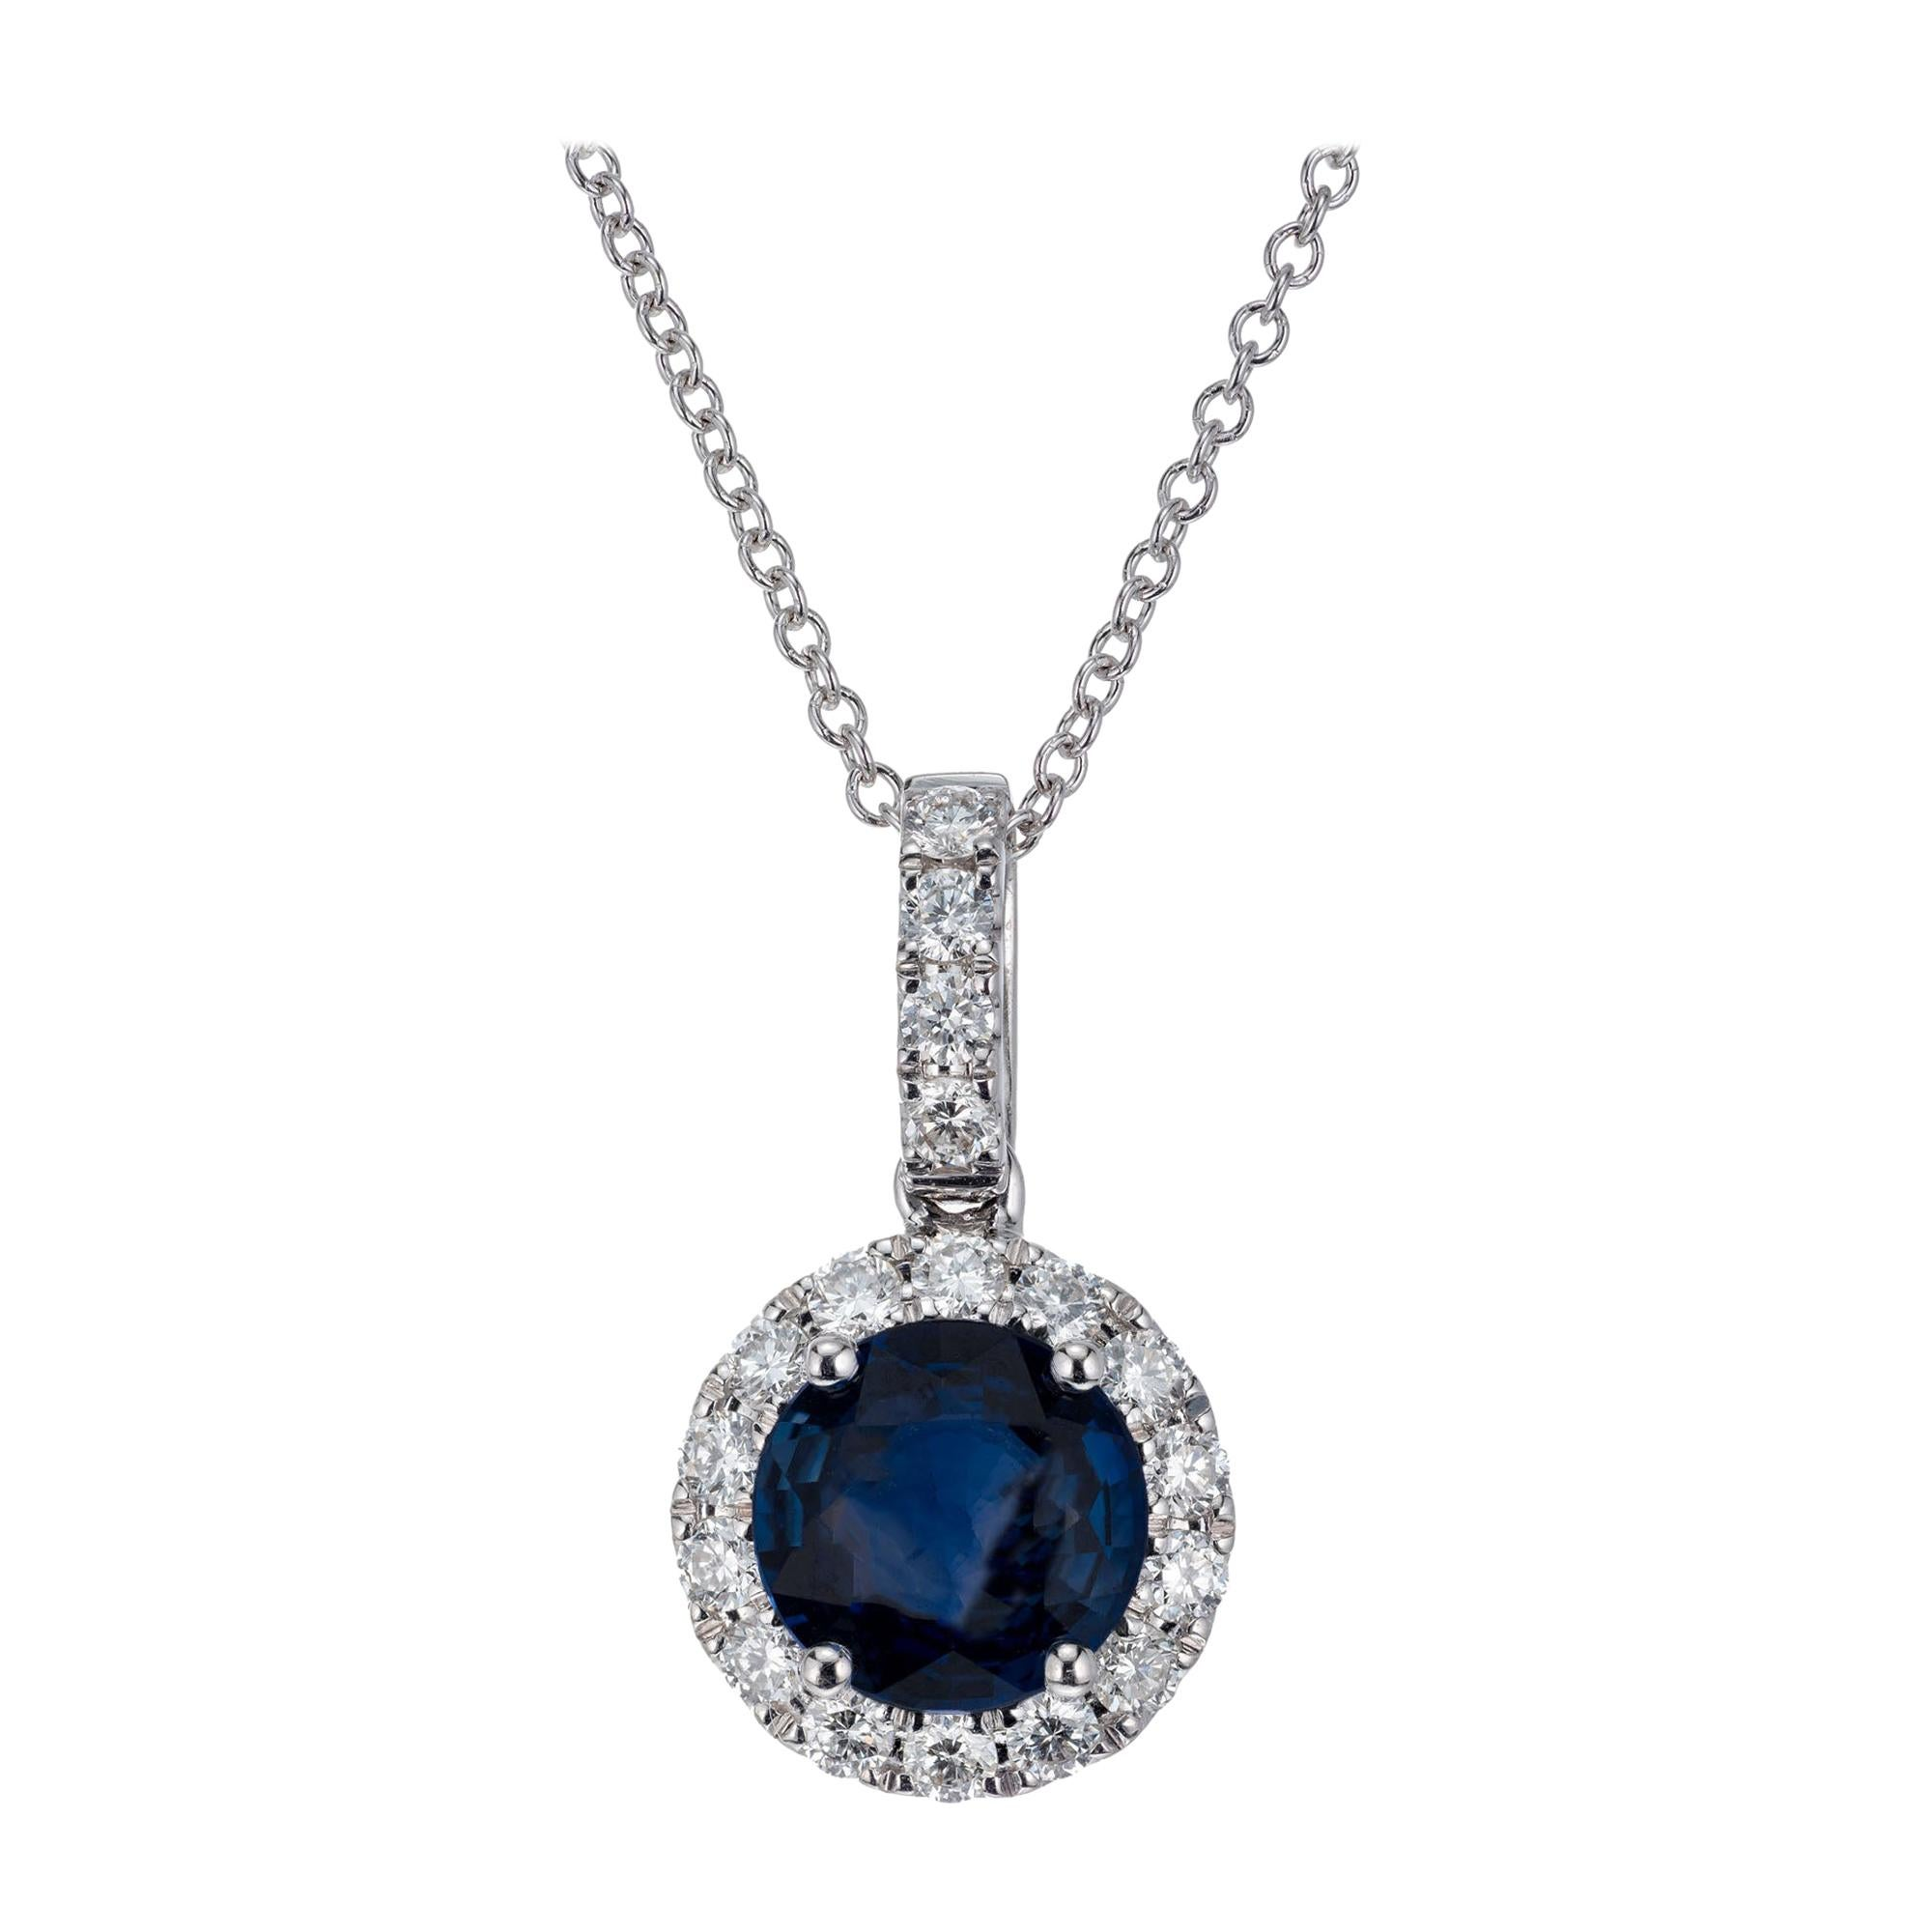 Peter Suchy GIA Certified 1.30 Carat Sapphire Diamond Gold Pendant Necklace